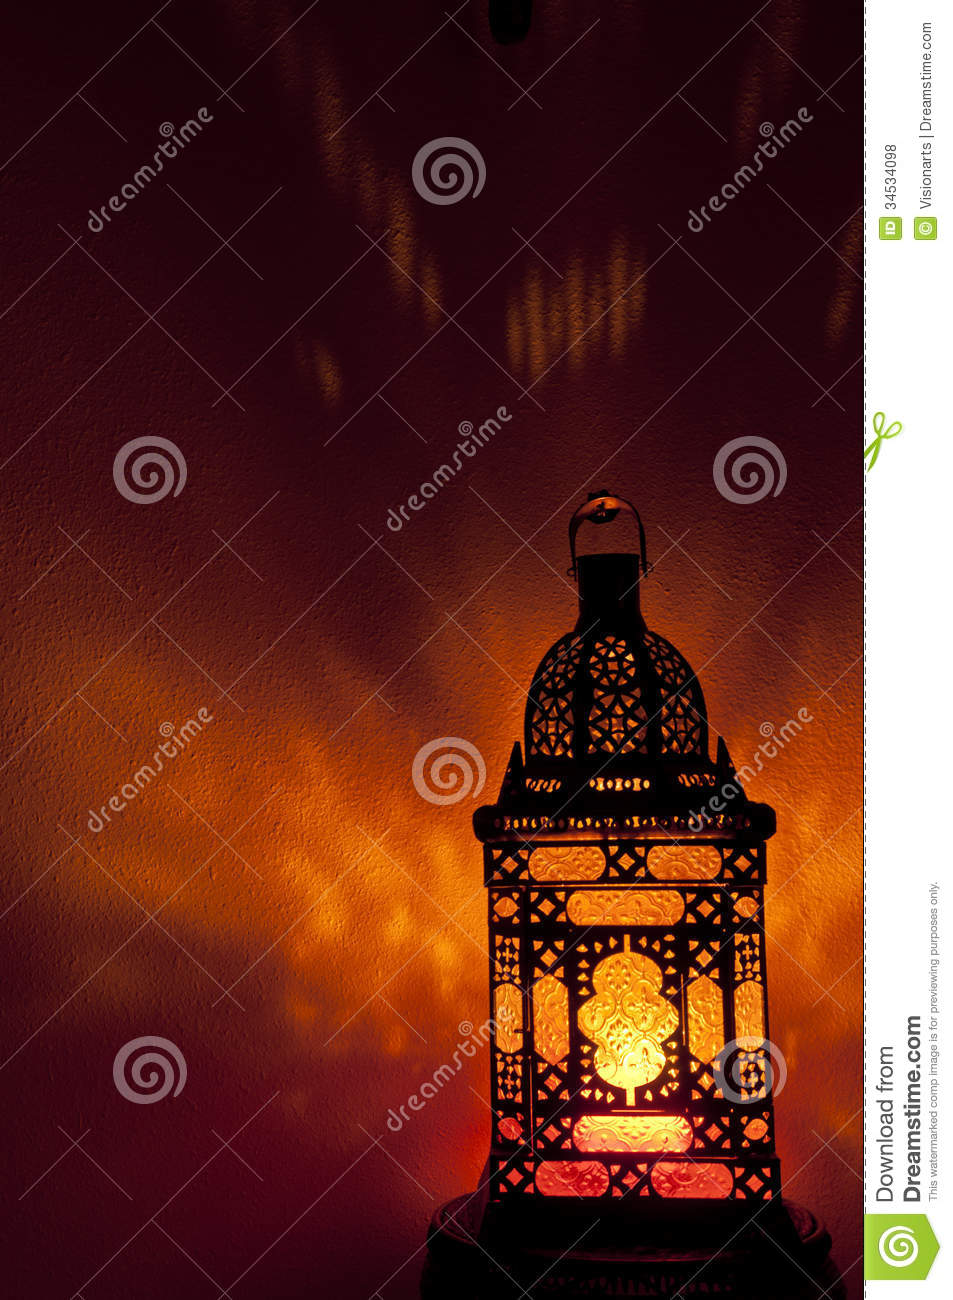 Moroccan geometric pattern royalty free stock photos image 13547078 - Moroccan Lantern With Gold Colored Glass Vertical Royalty Free Stock